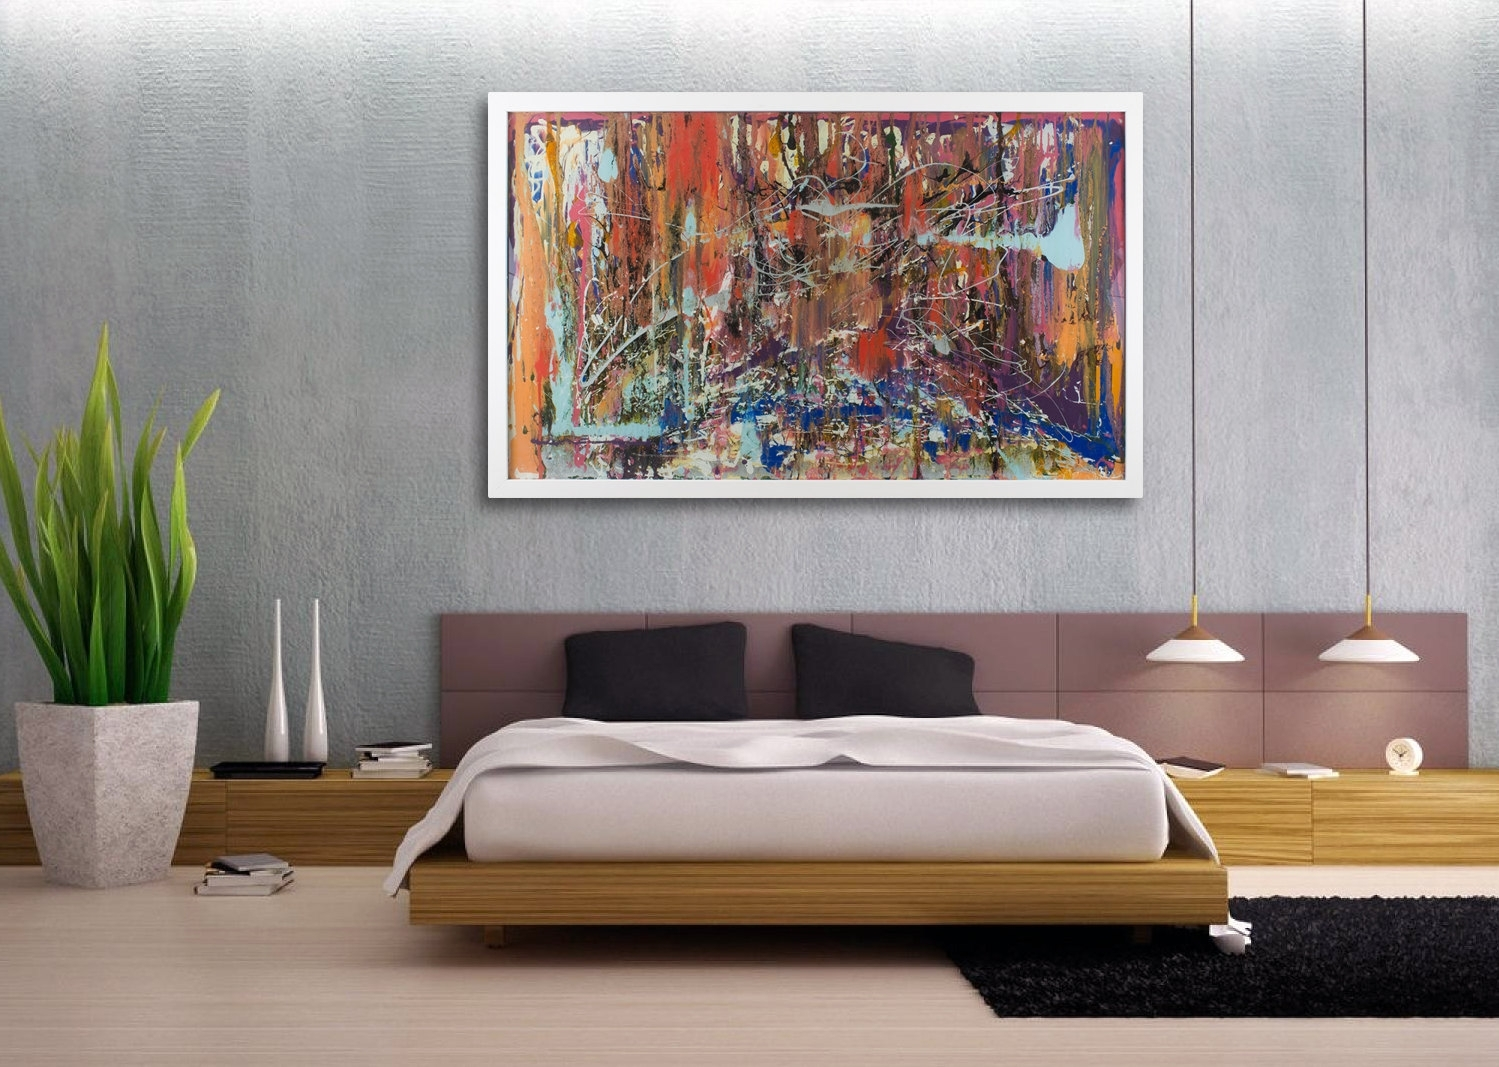 Expensive Large Canvas Wall Art Bedroom — Joanne Russo Homesjoanne Intended For Most Recently Released Large Canvas Wall Art (Gallery 8 of 15)